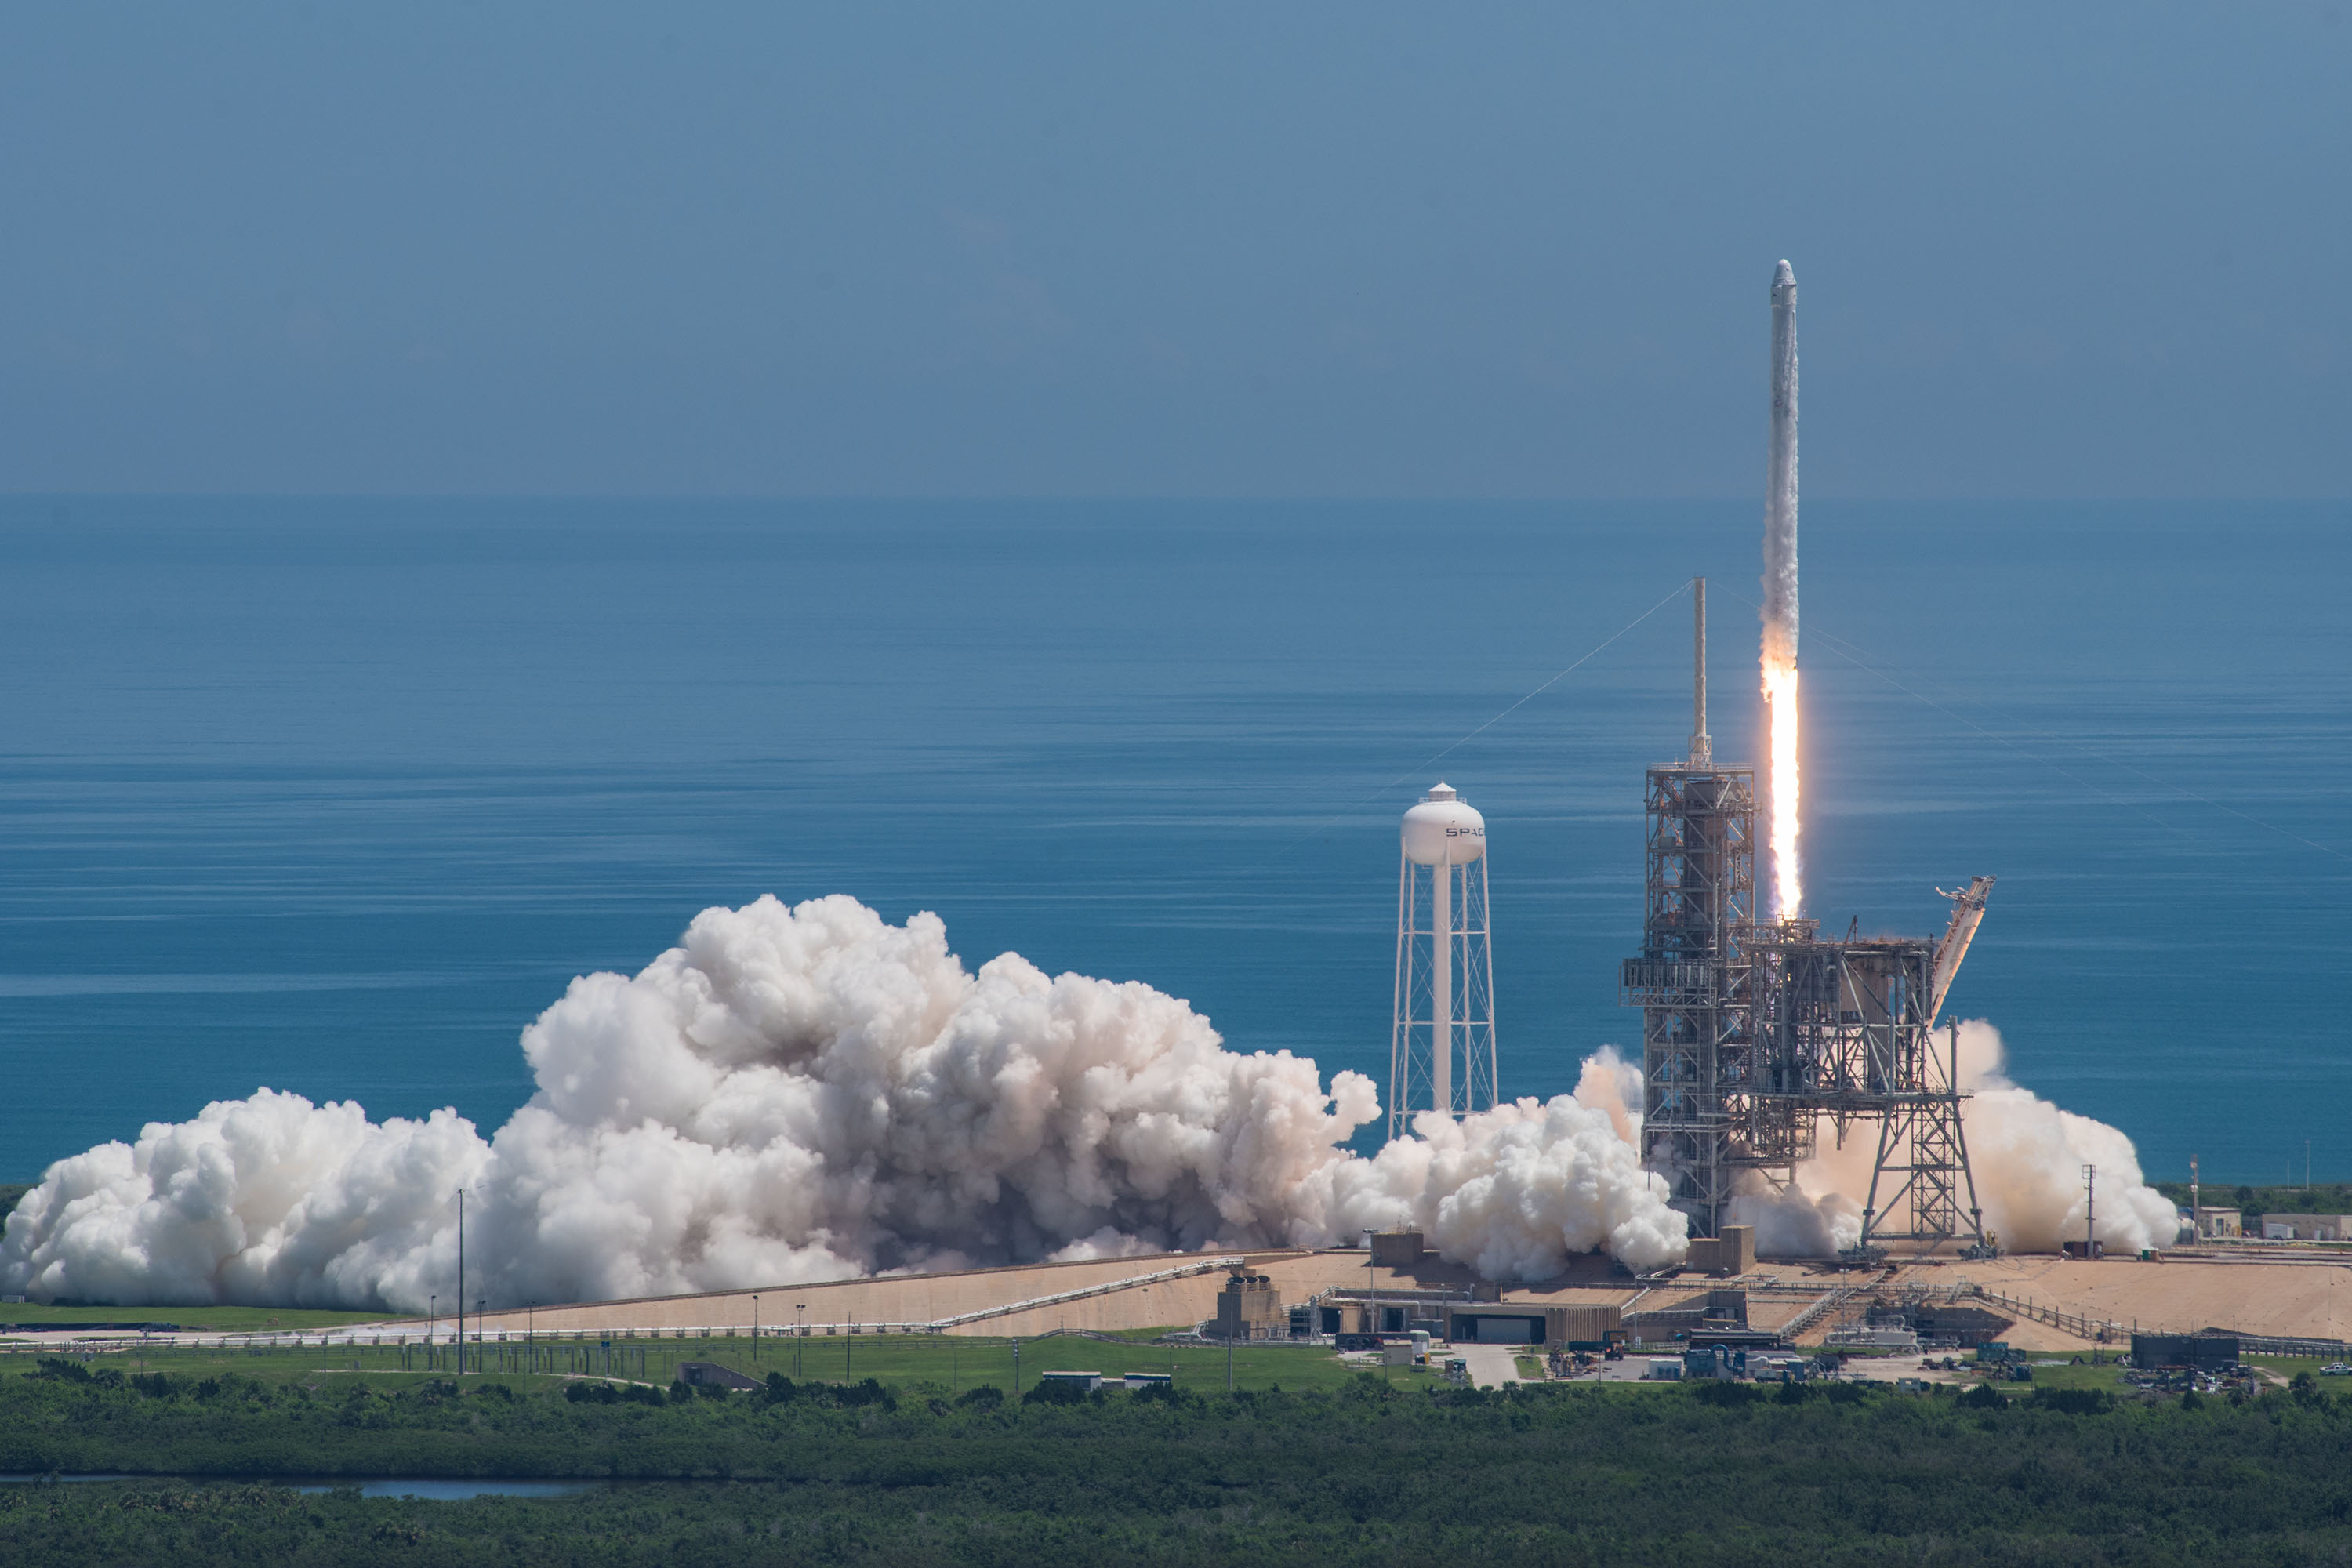 CRS-13 launch (SpaceX)